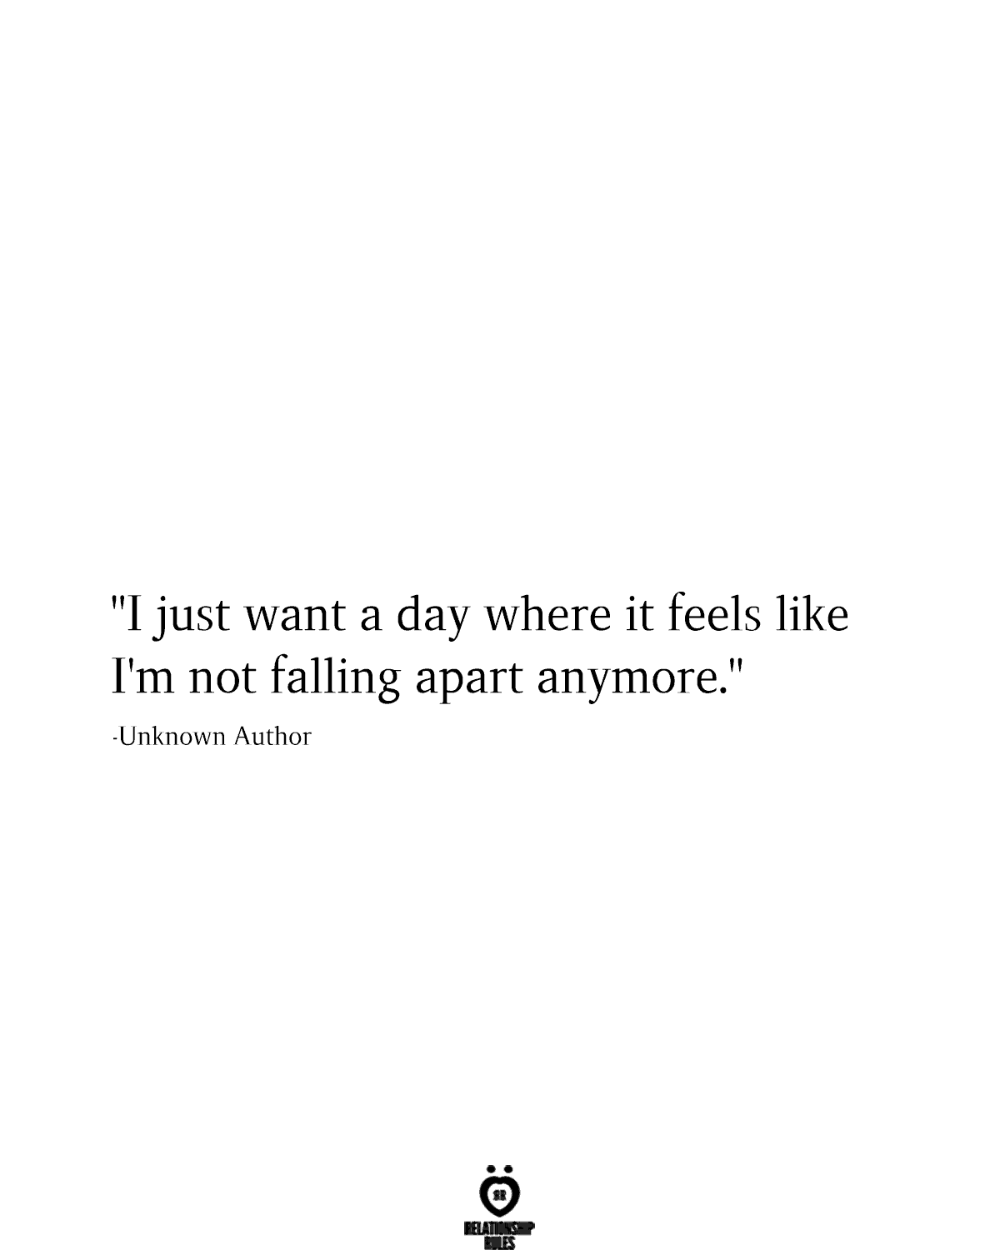 I Just Want A Day Where It Feels Like I'm Not Falling Apart Anymore